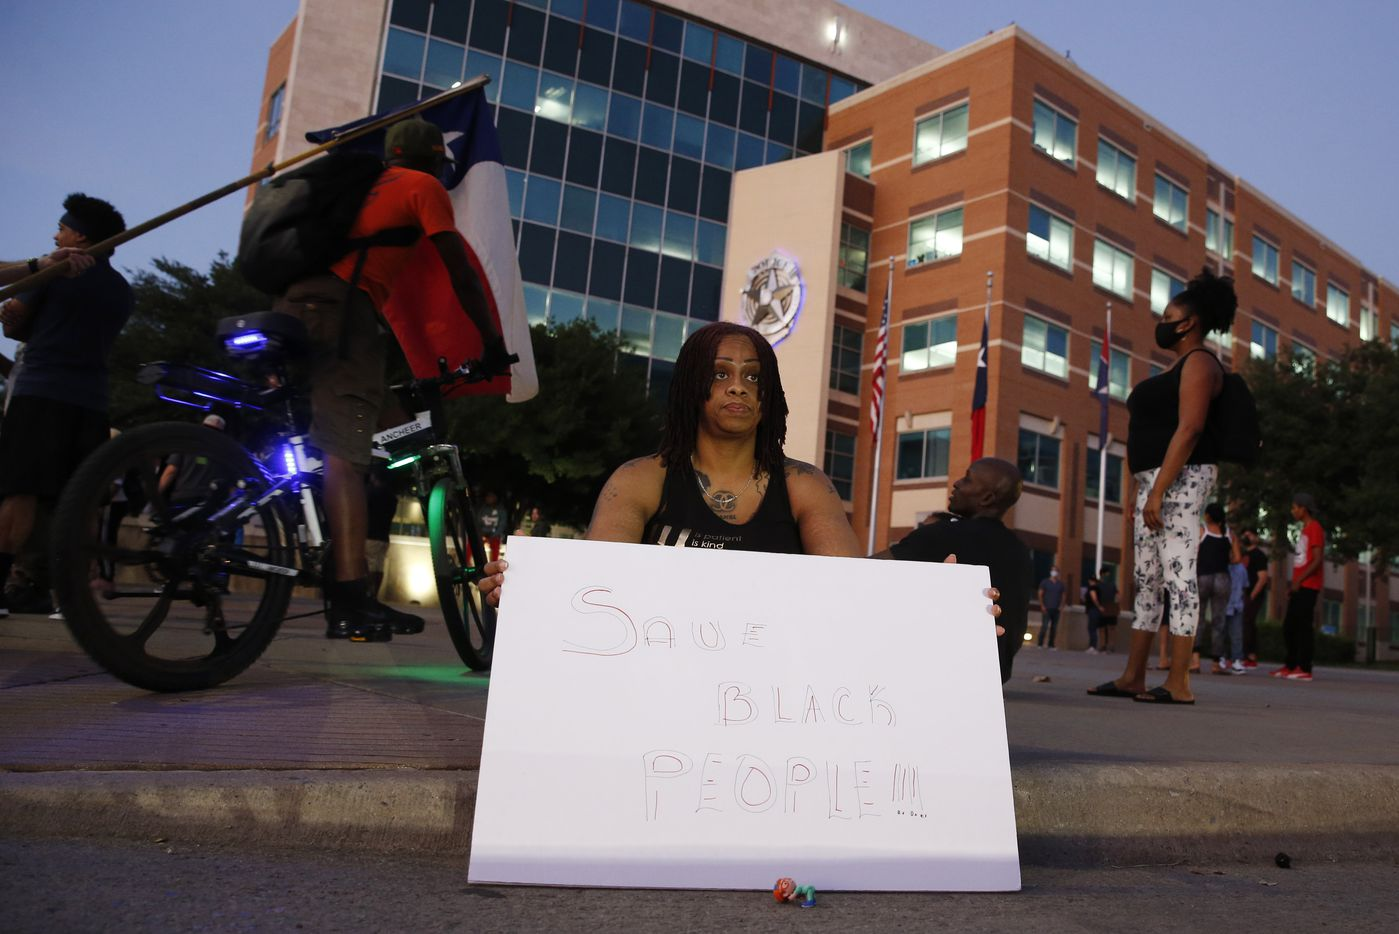 Chanel Speight of Dallas sits in front of the Dallas Police Department Headquarters during a demonstration against police brutality in downtown Dallas, on Friday, May 29, 2020. George Floyd died in police custody in Minneapolis on May 25.